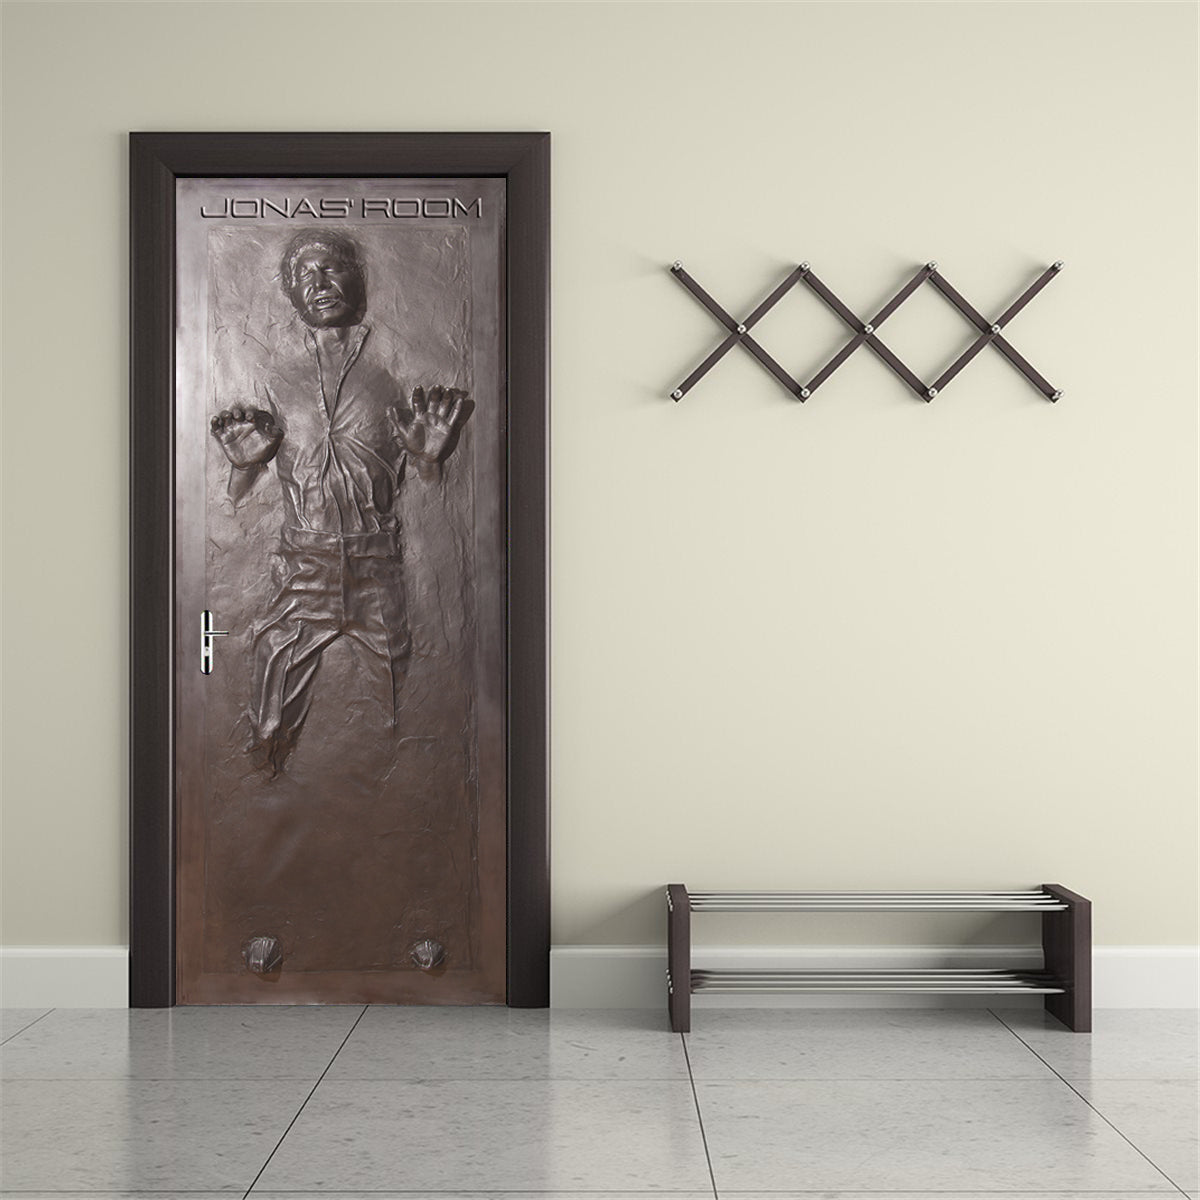 Han Solo Carbonite Star Wars Personalized Door Wrap Decal Removable St Decalz Co